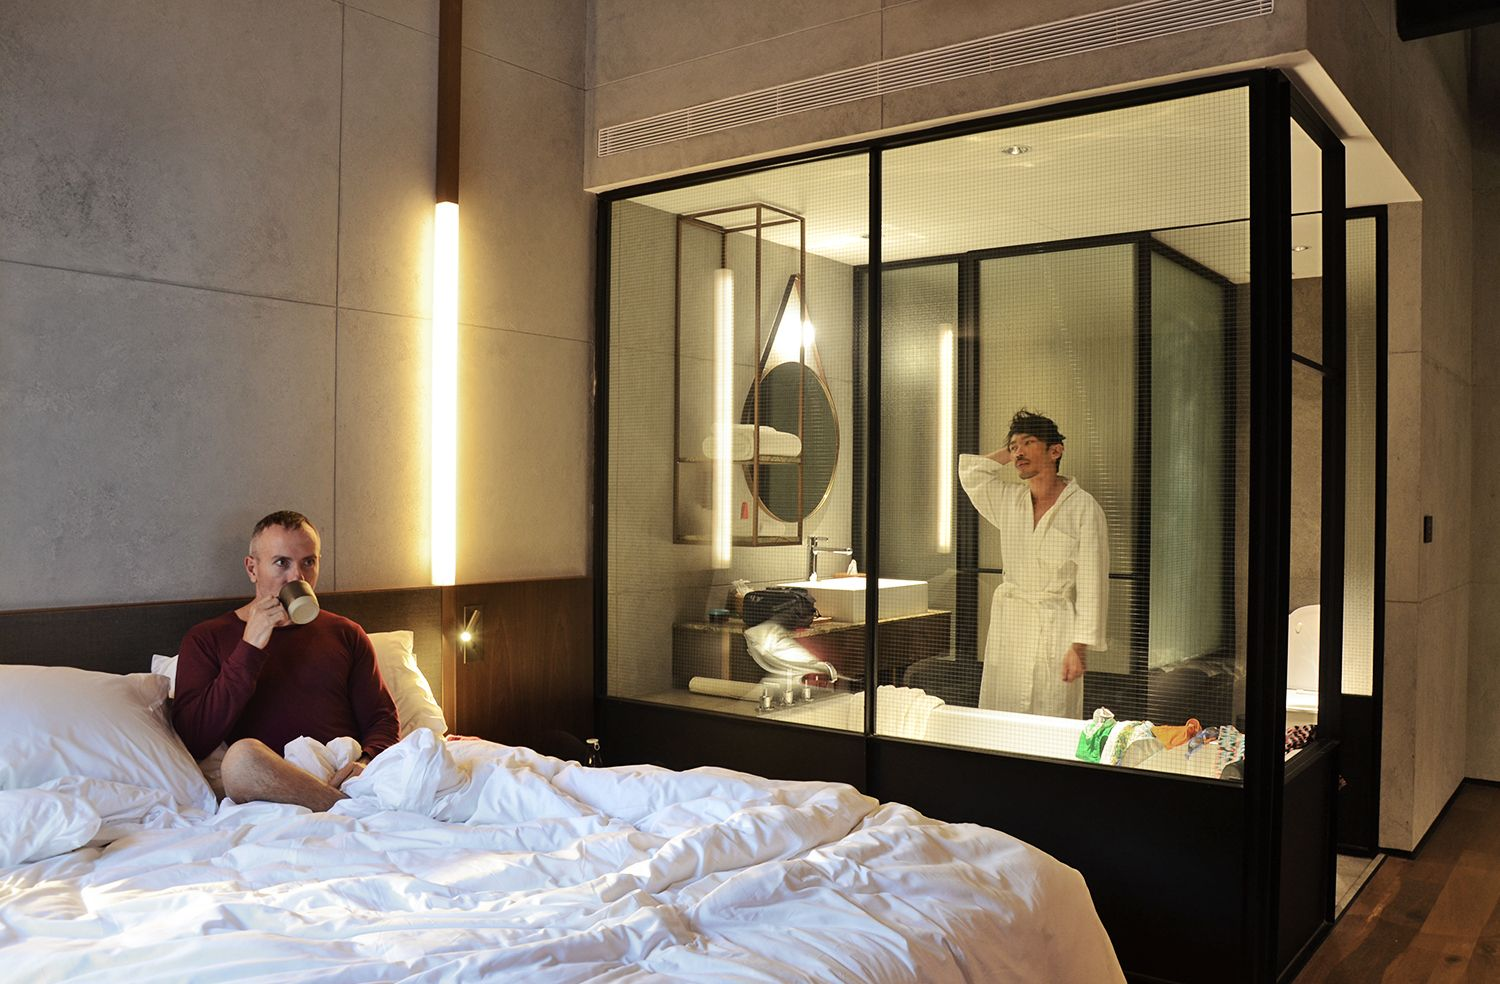 Warehouse Hotel, where to stay in singapore, industrial